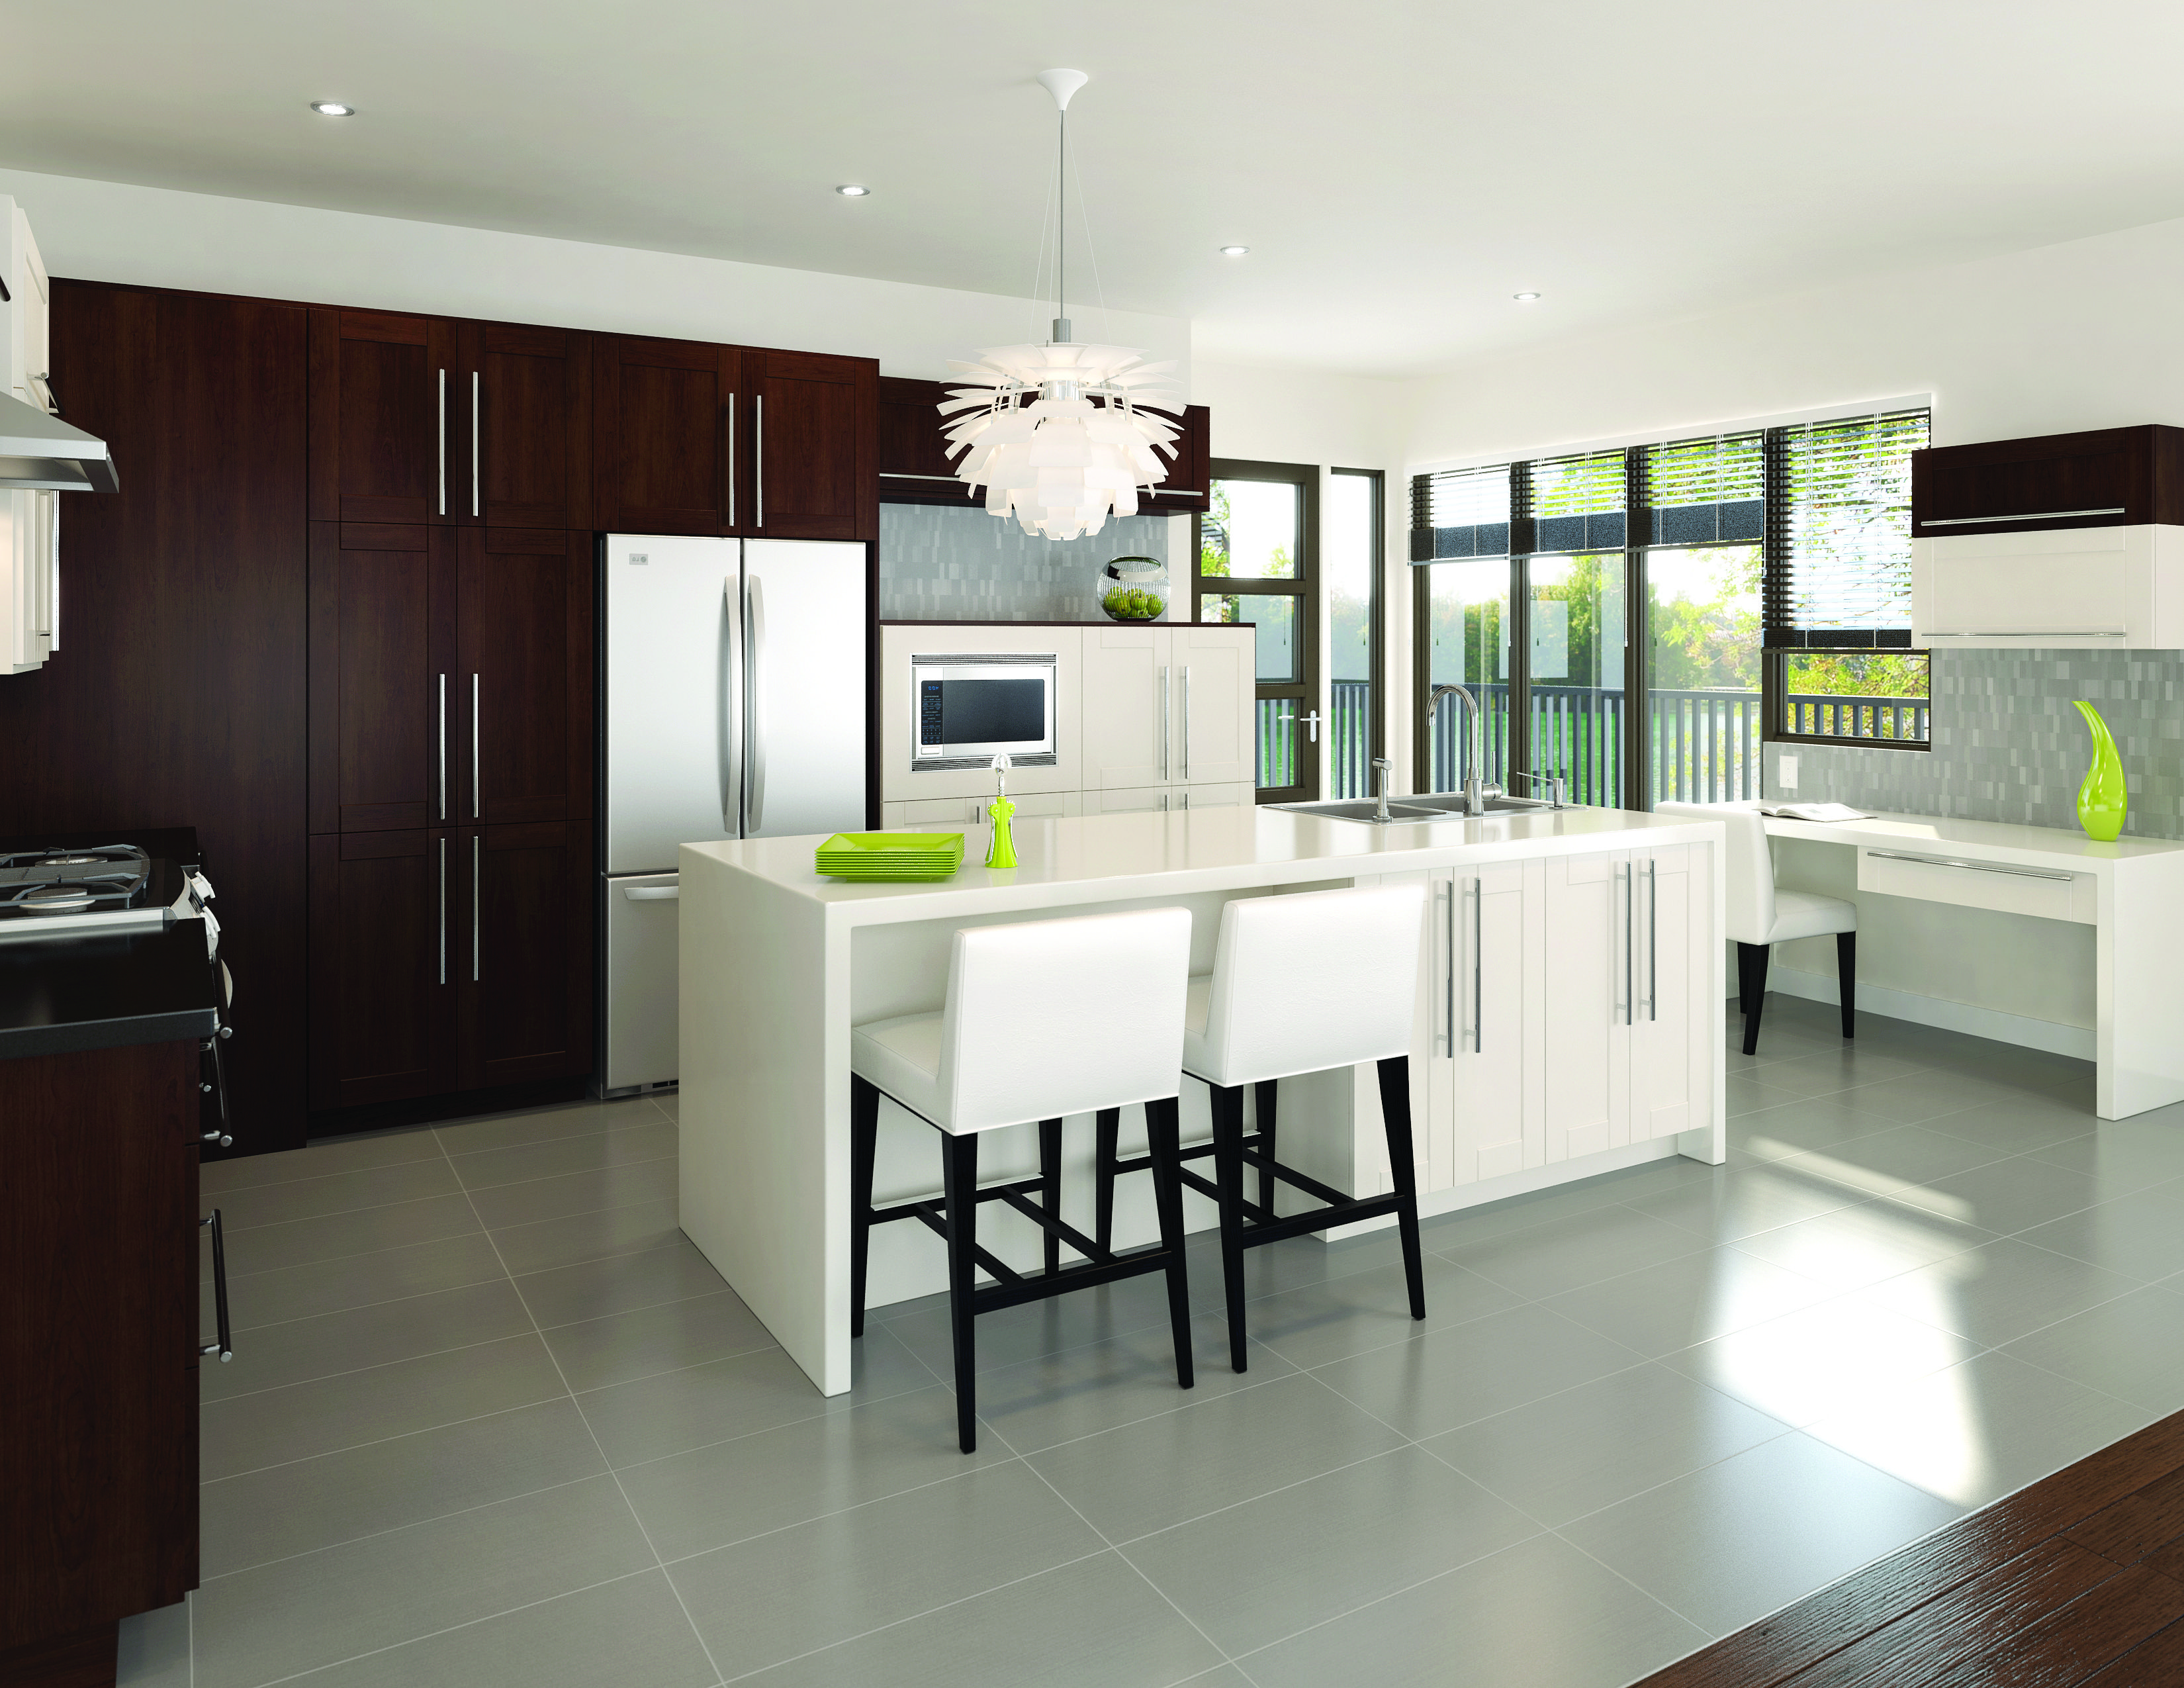 Contemporary Kitchen From Fabritec Instant #fallidays #kitchen Awesome Design My Kitchen Home Depot Review